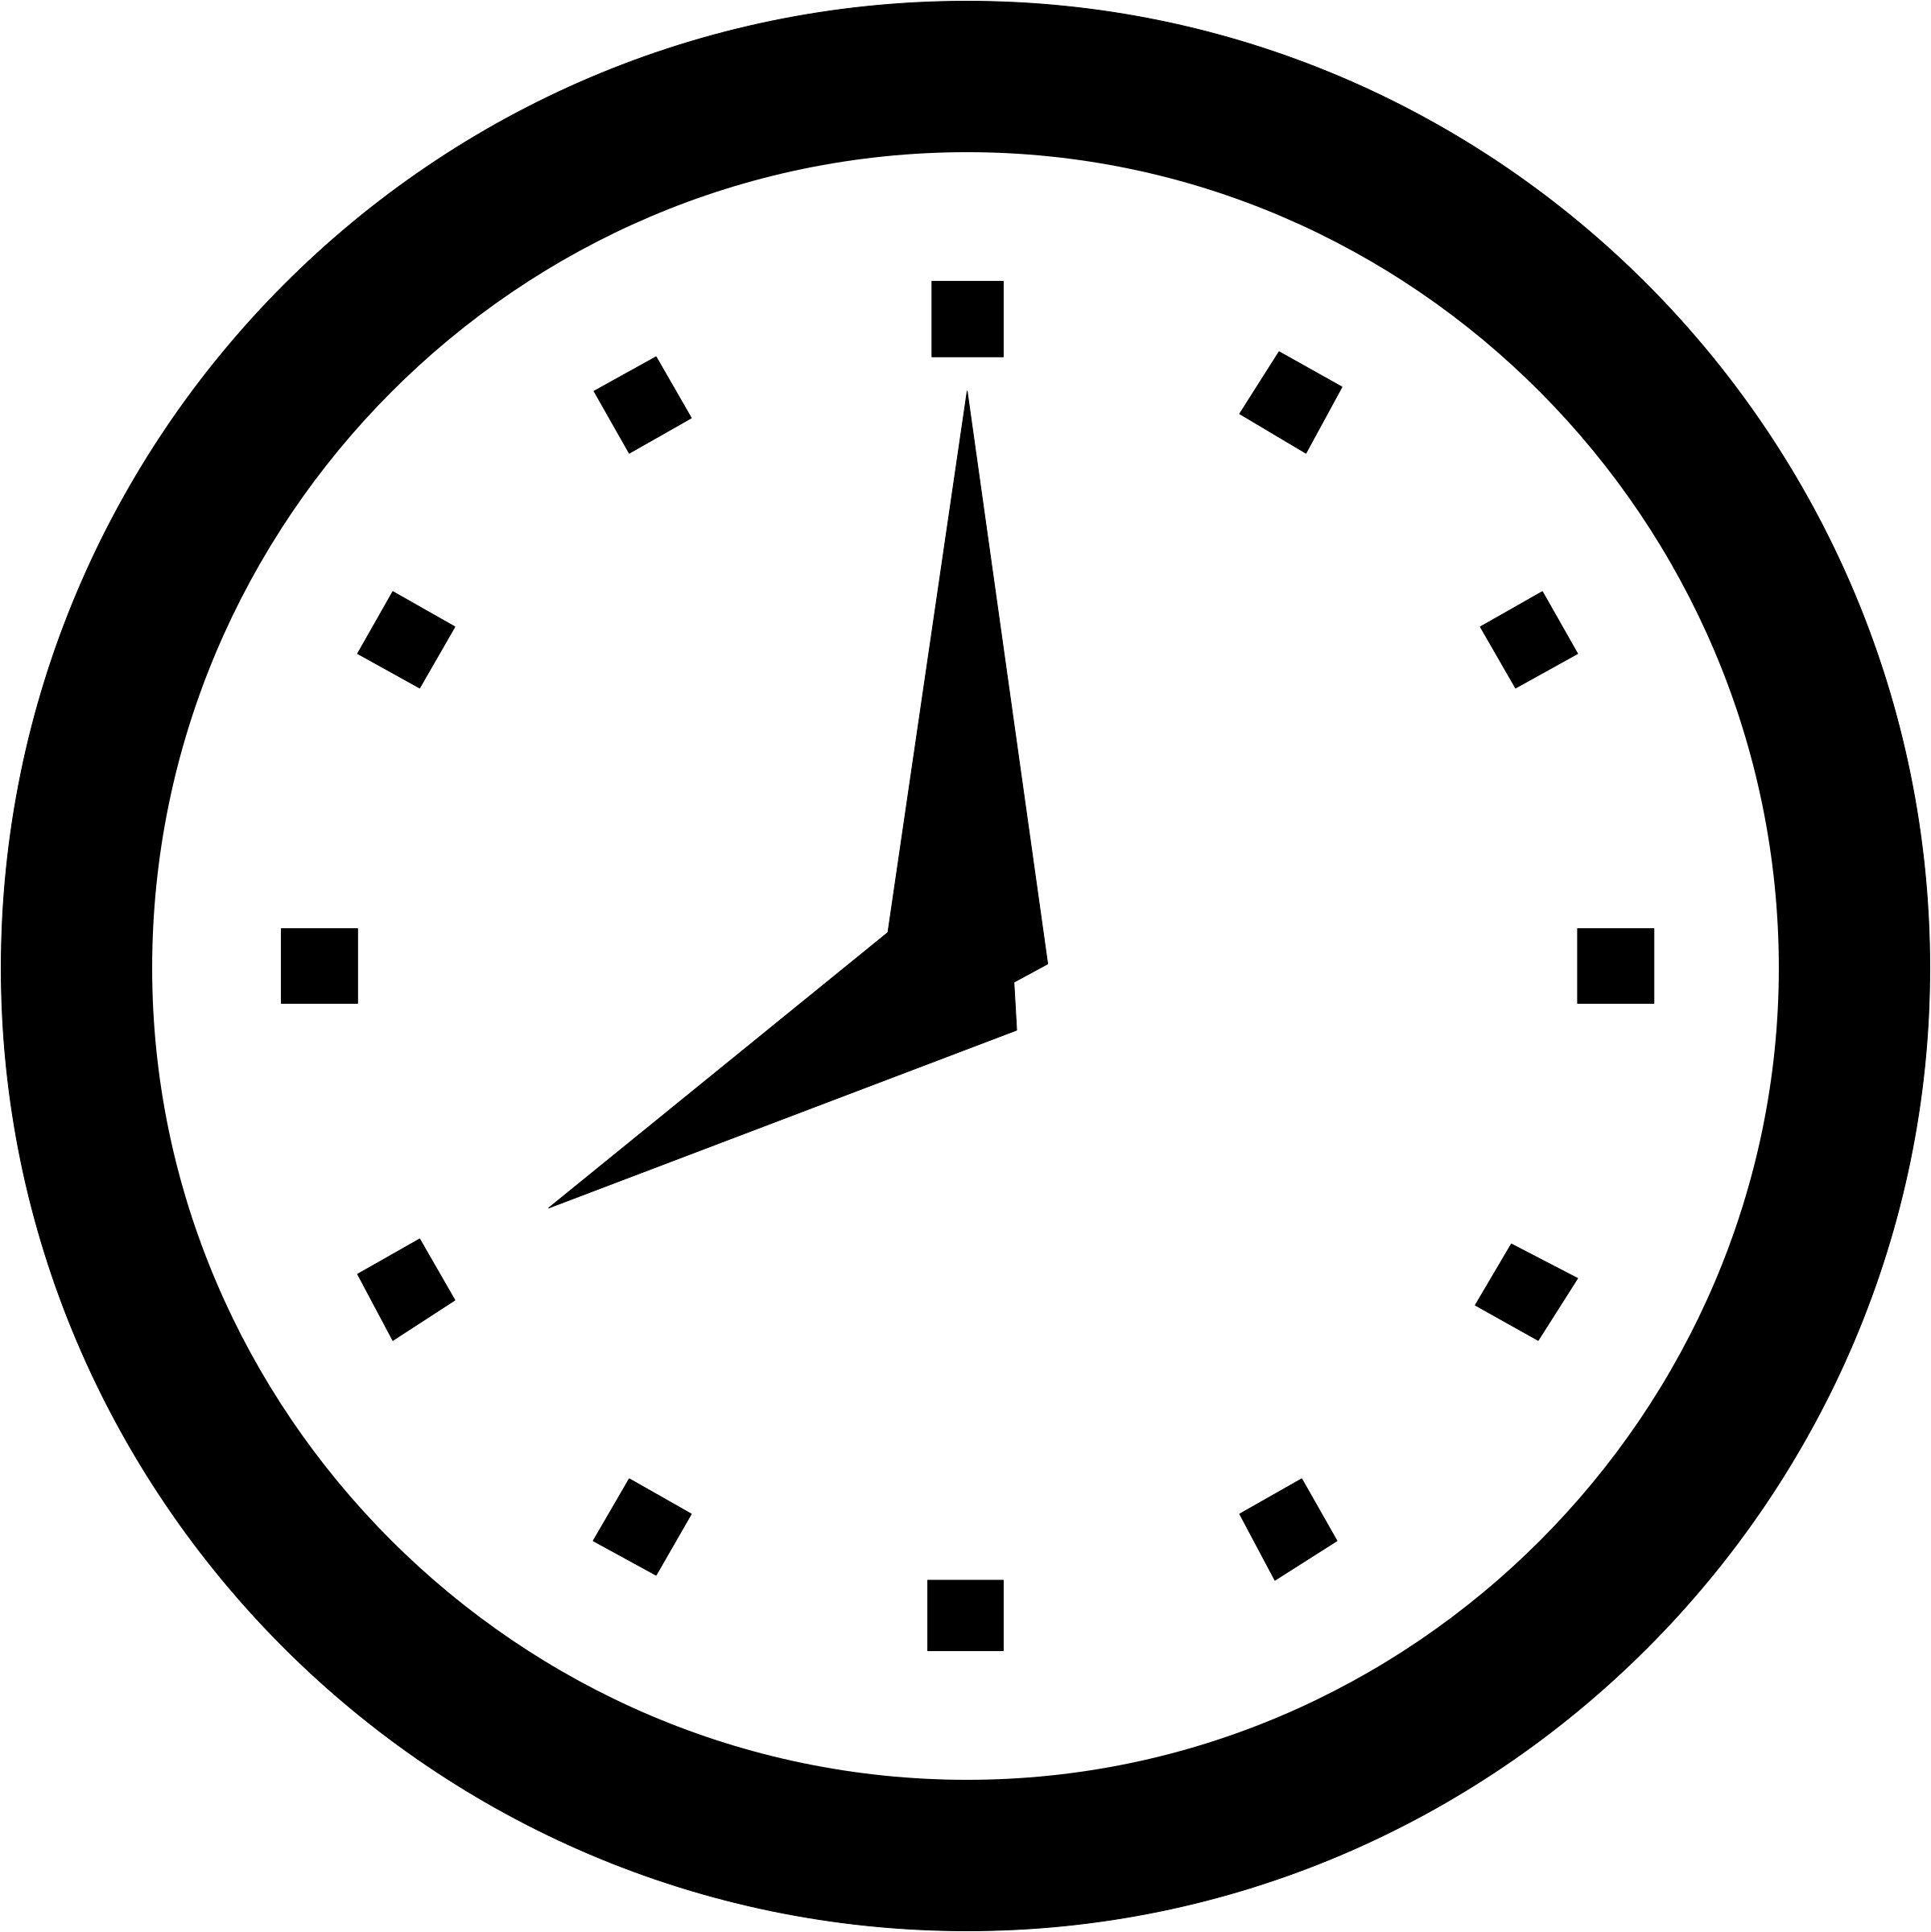 Clock by palomaironique